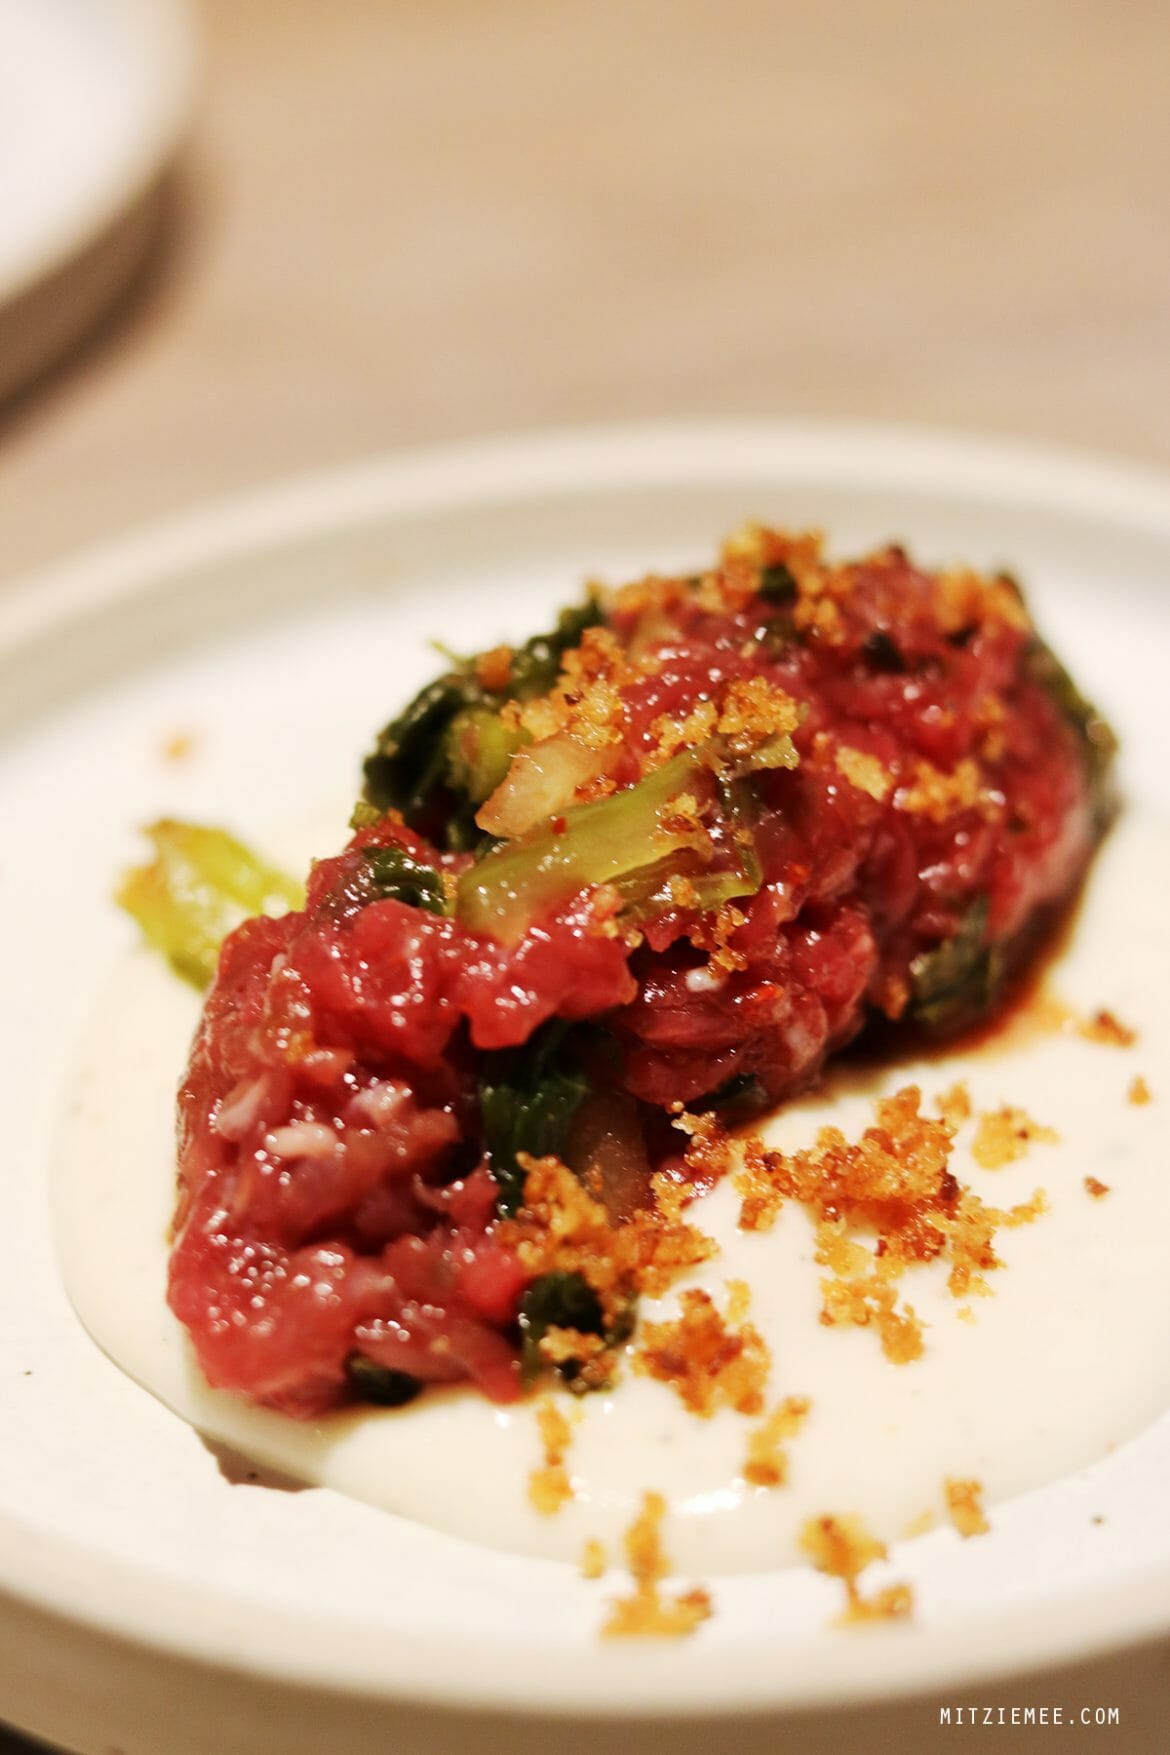 Beef Tartare, Atoboy, Korean restaurant in New York